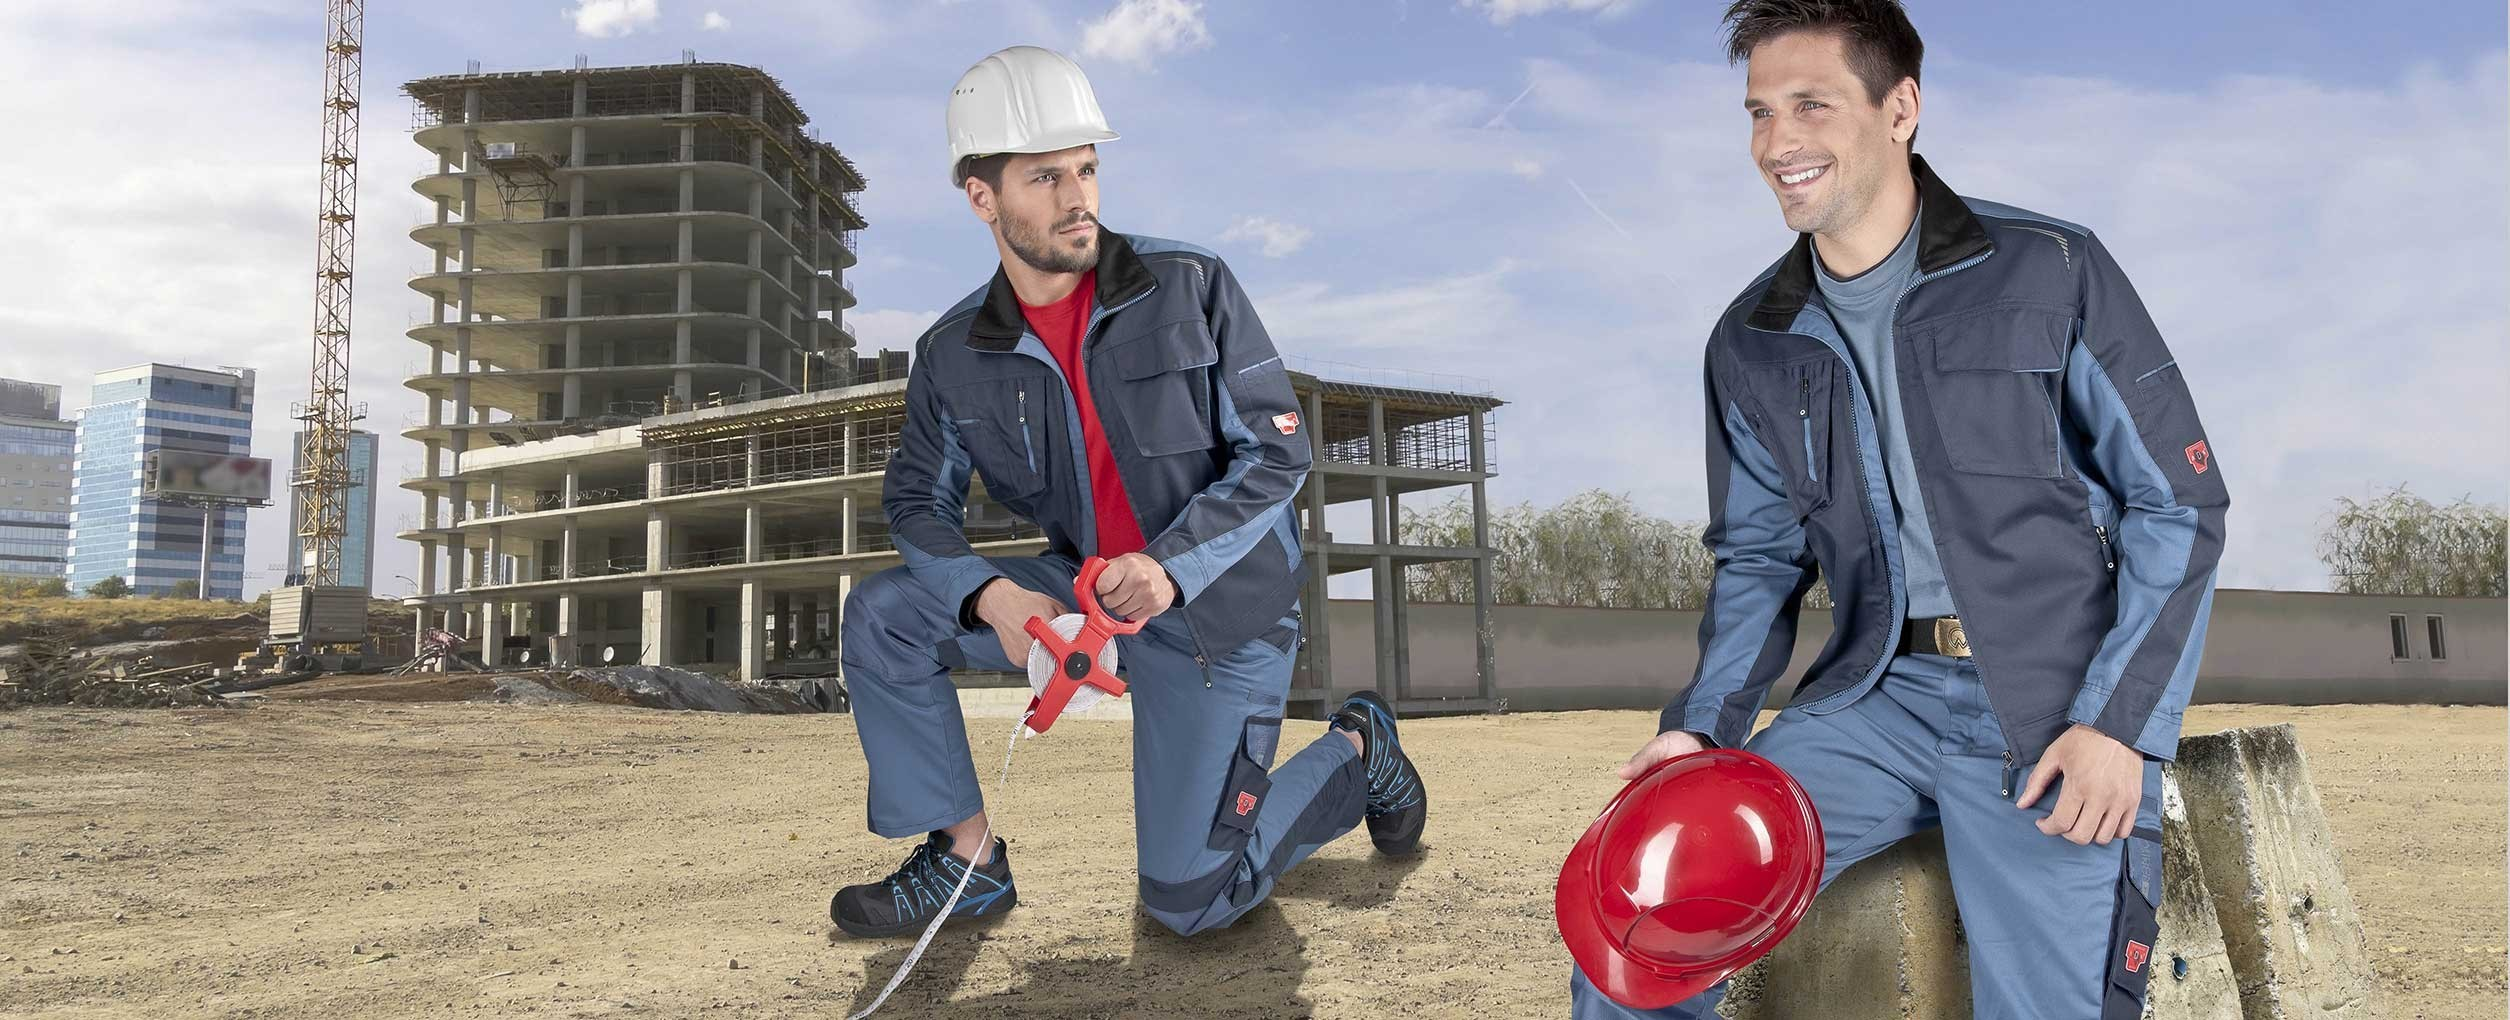 Sijicom | Personal protective equipment for labor protection and hygiene